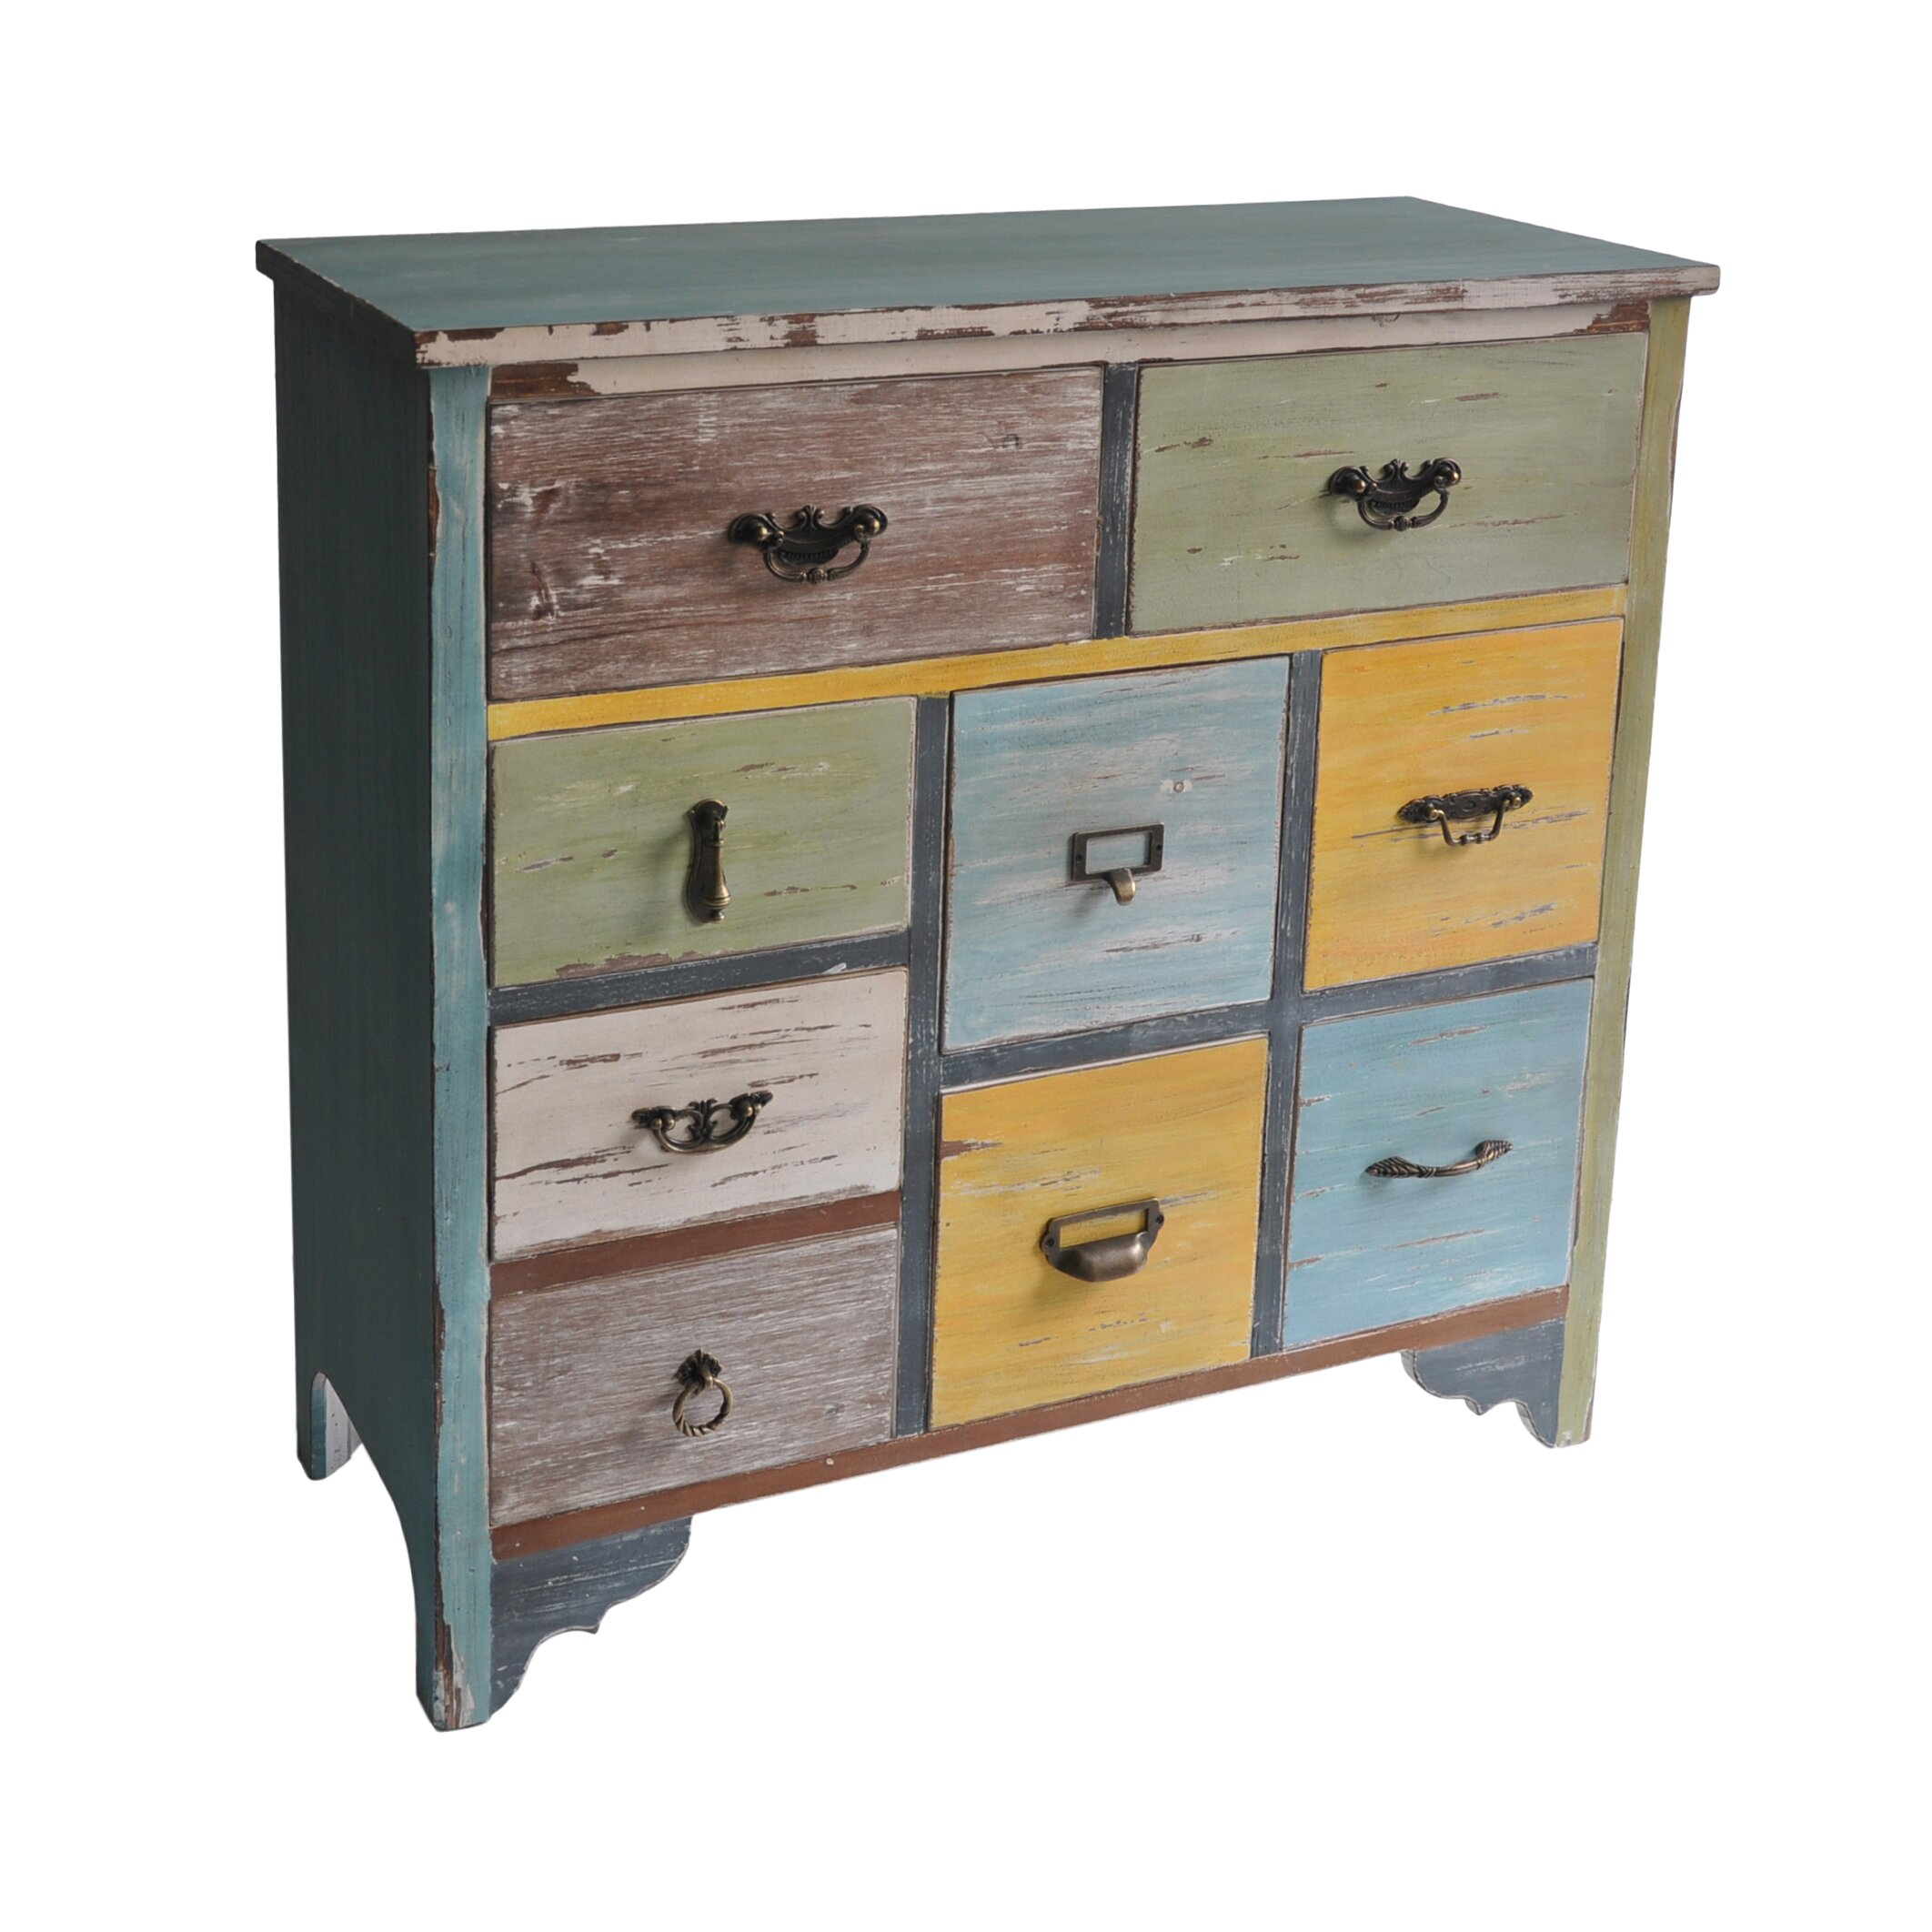 Marvelous photograph of Cheungs 9 Drawer Wooden Chest & Reviews Wayfair with #9A7531 color and 2124x2124 pixels